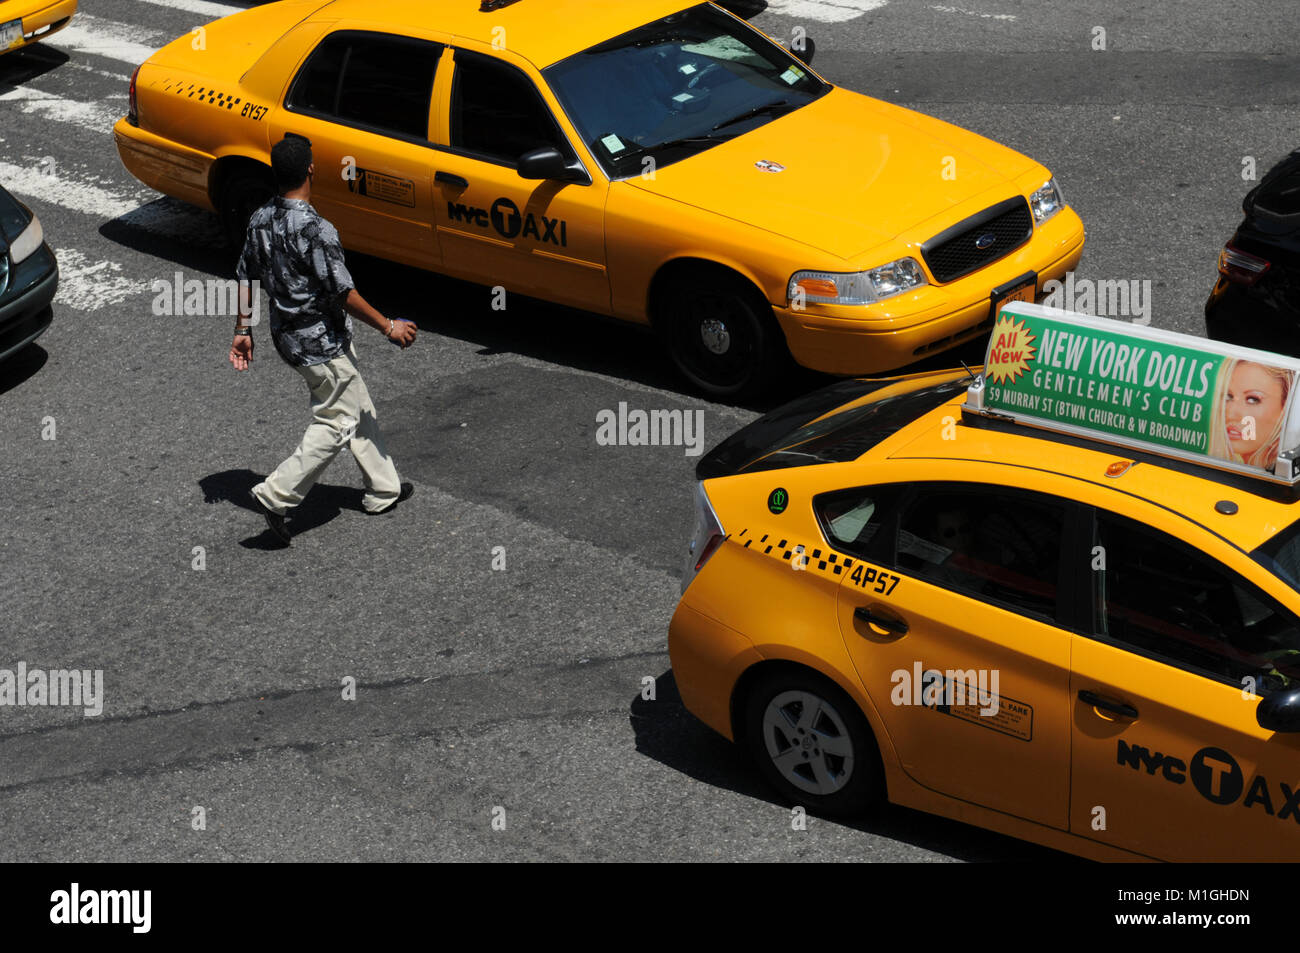 Man walking between yellow taxi cabs at the streets of New York City - Stock Image